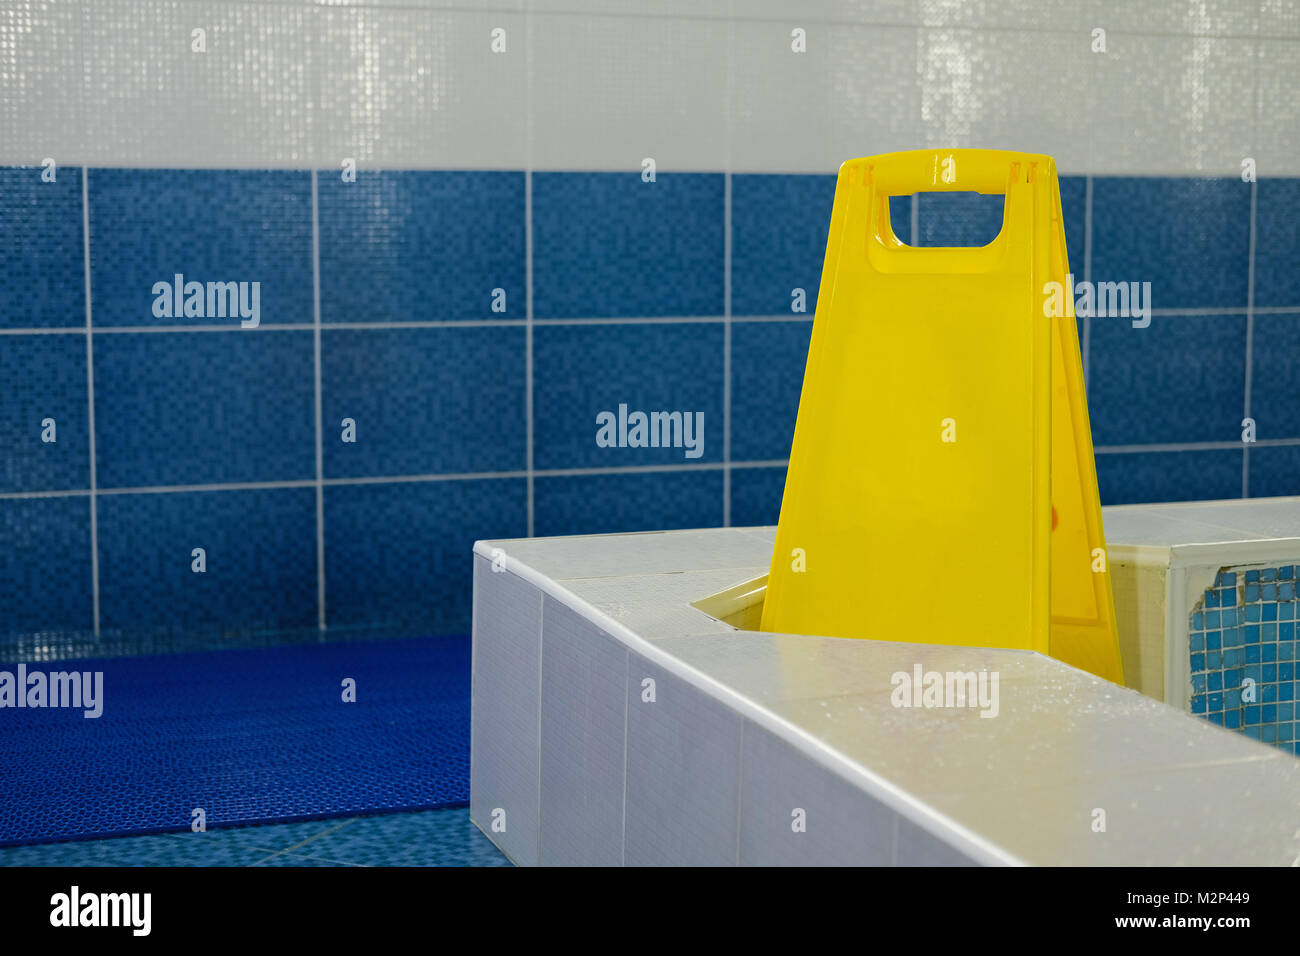 Yellow plastic sign by swimming pool. Copy space. Empty space for text. - Stock Image